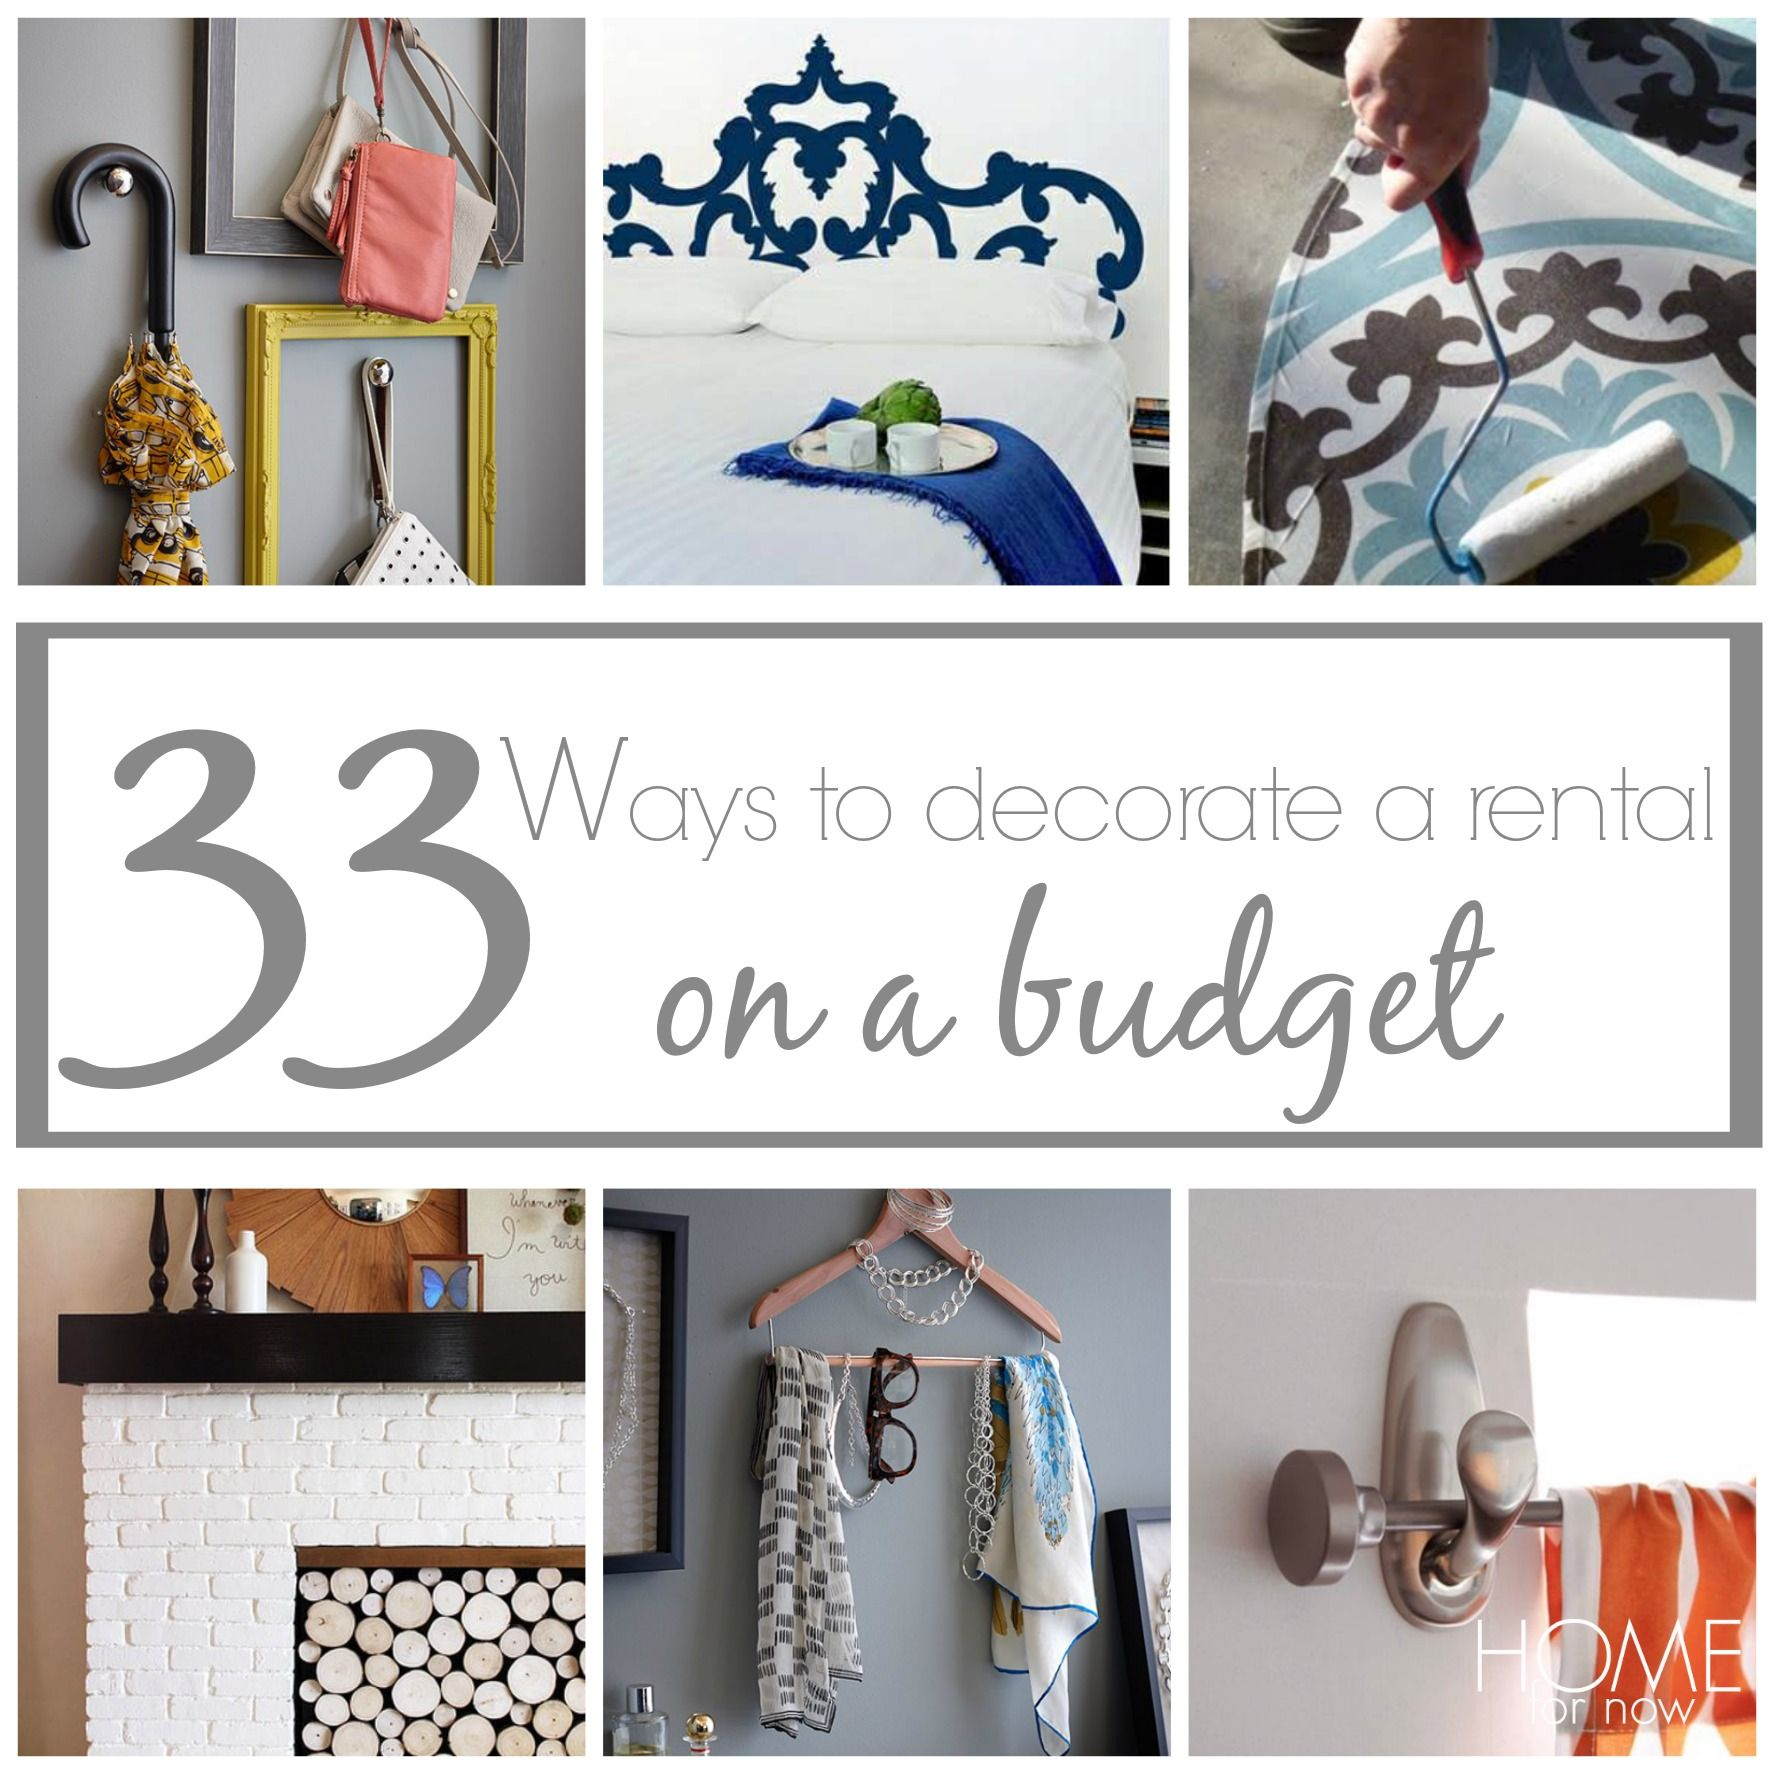 Decorate A Rental Gorgeous 33 Ways To Decorate A Rental On A Budget  How To Decorate A . Decorating Inspiration